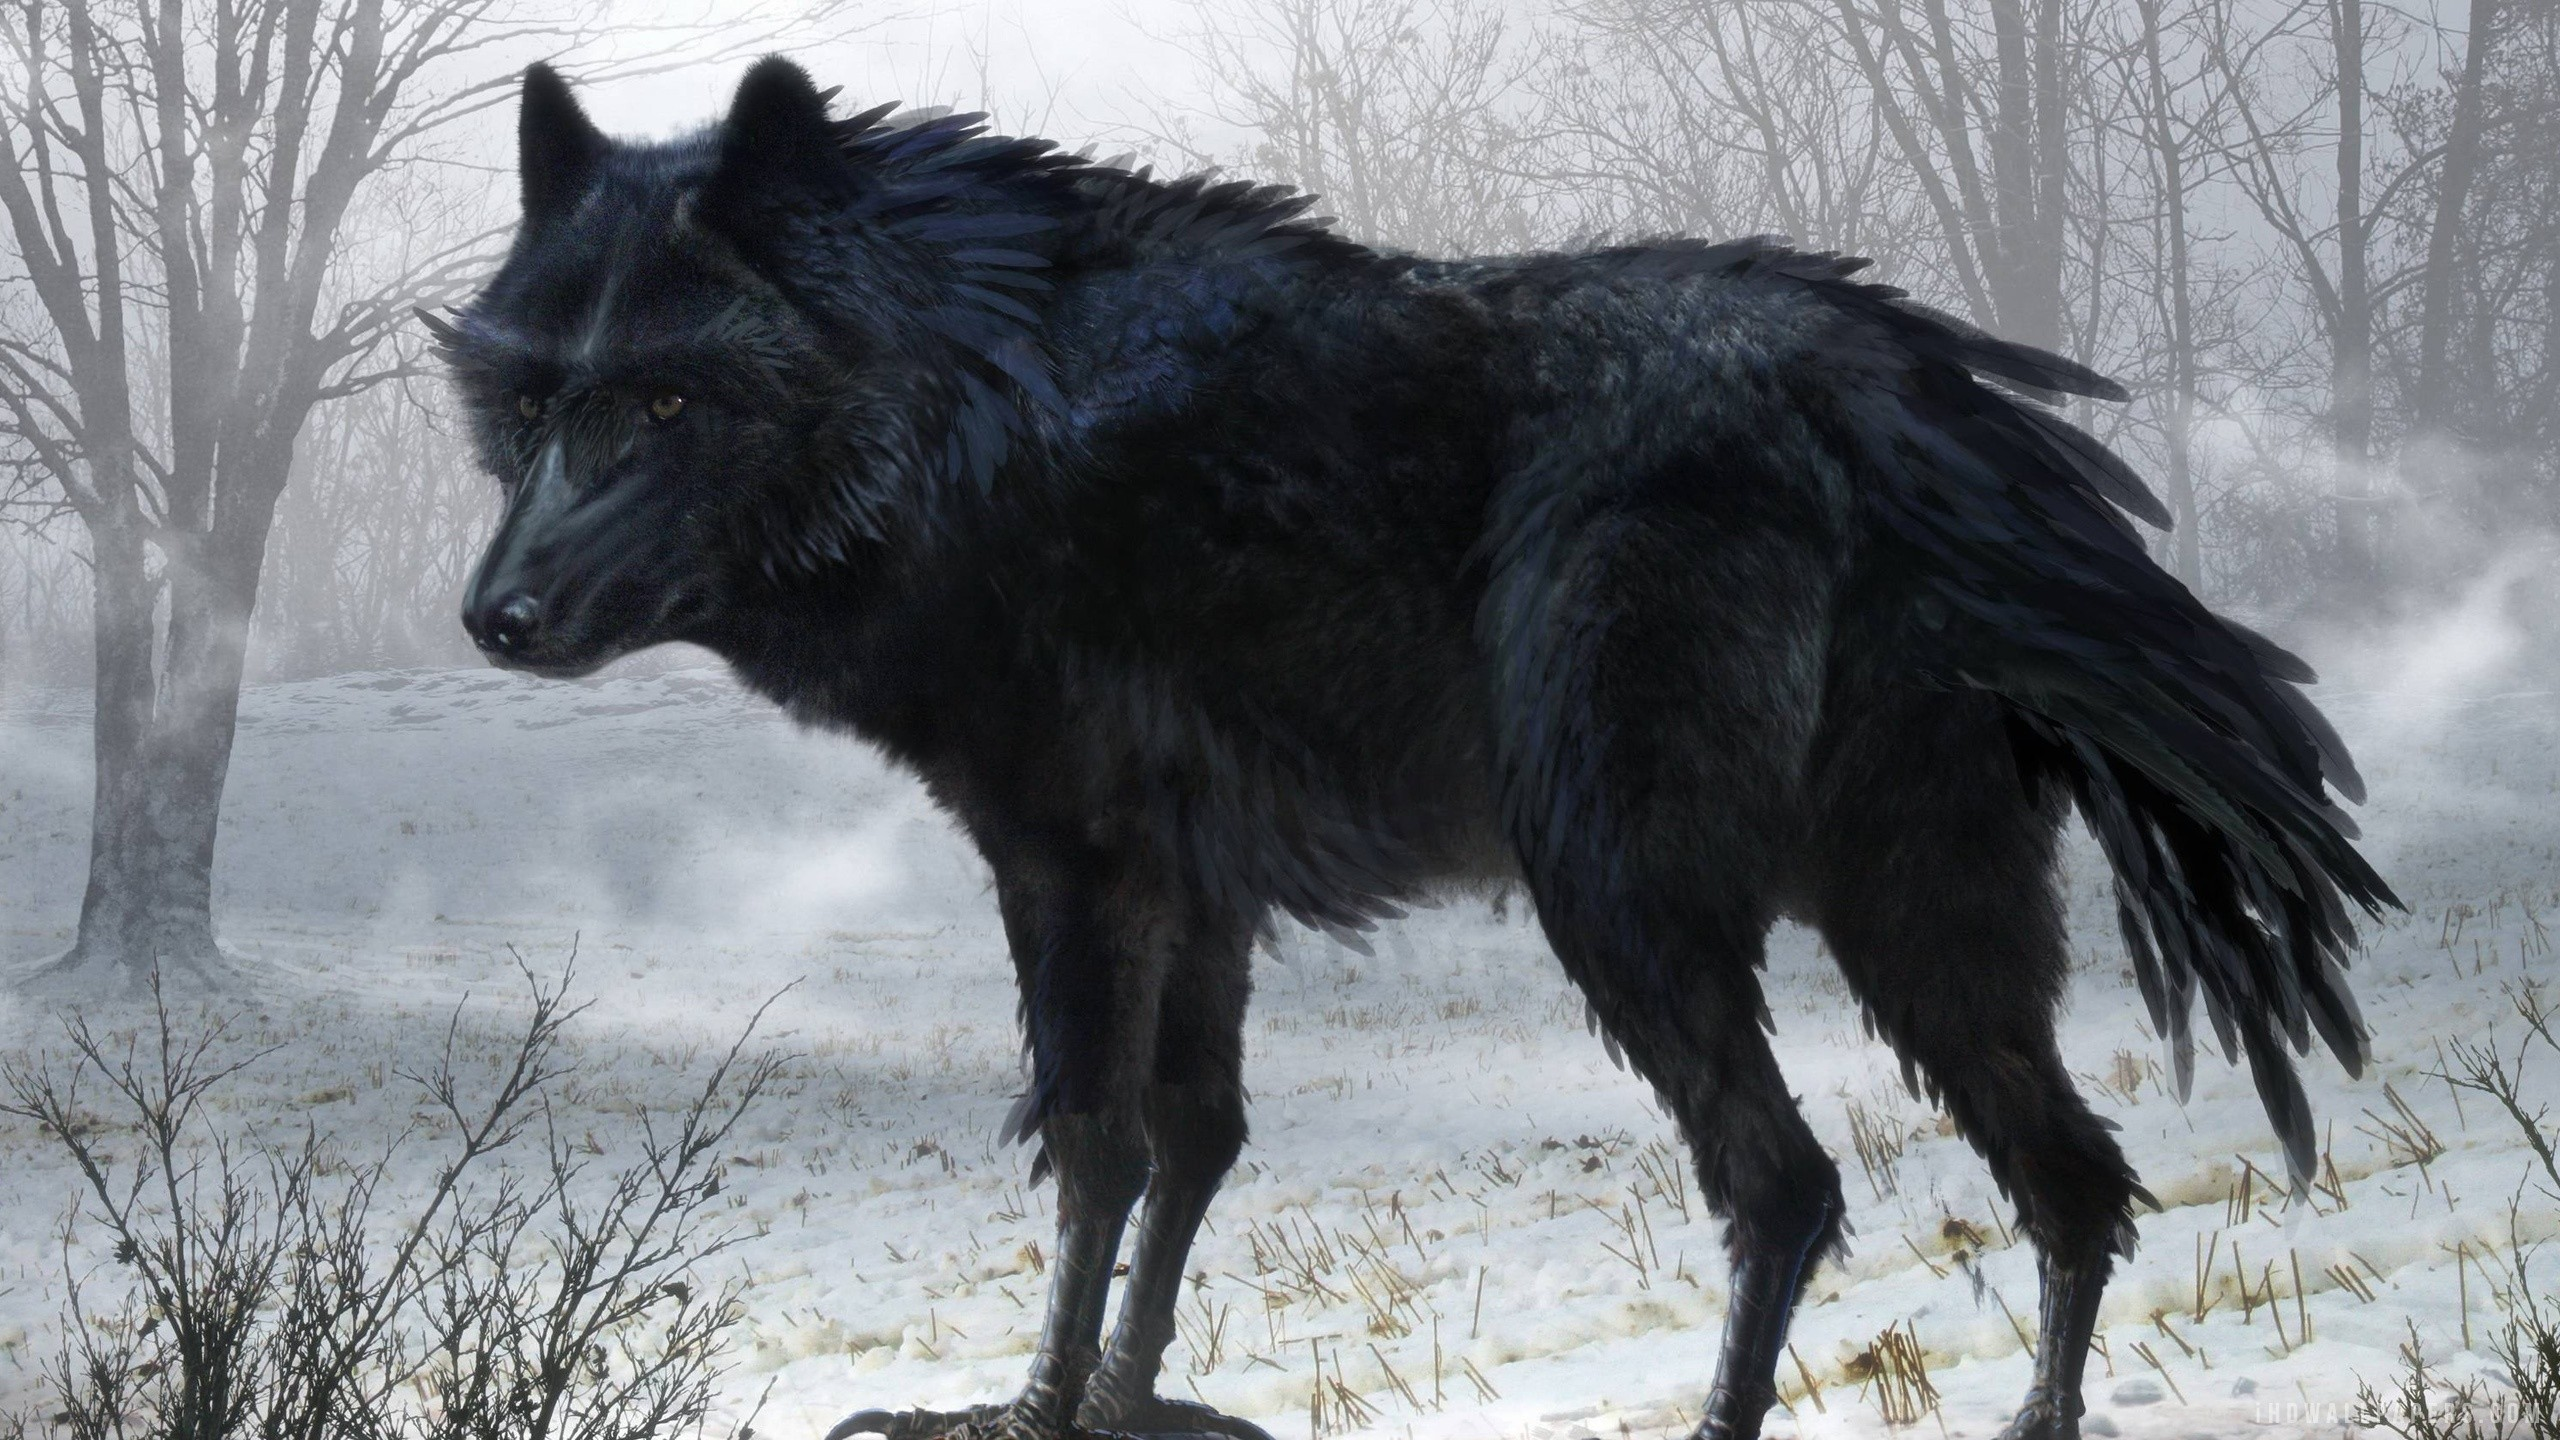 2560x1440 Black Wolf Art HD Wallpaper - iHD Wallpapers